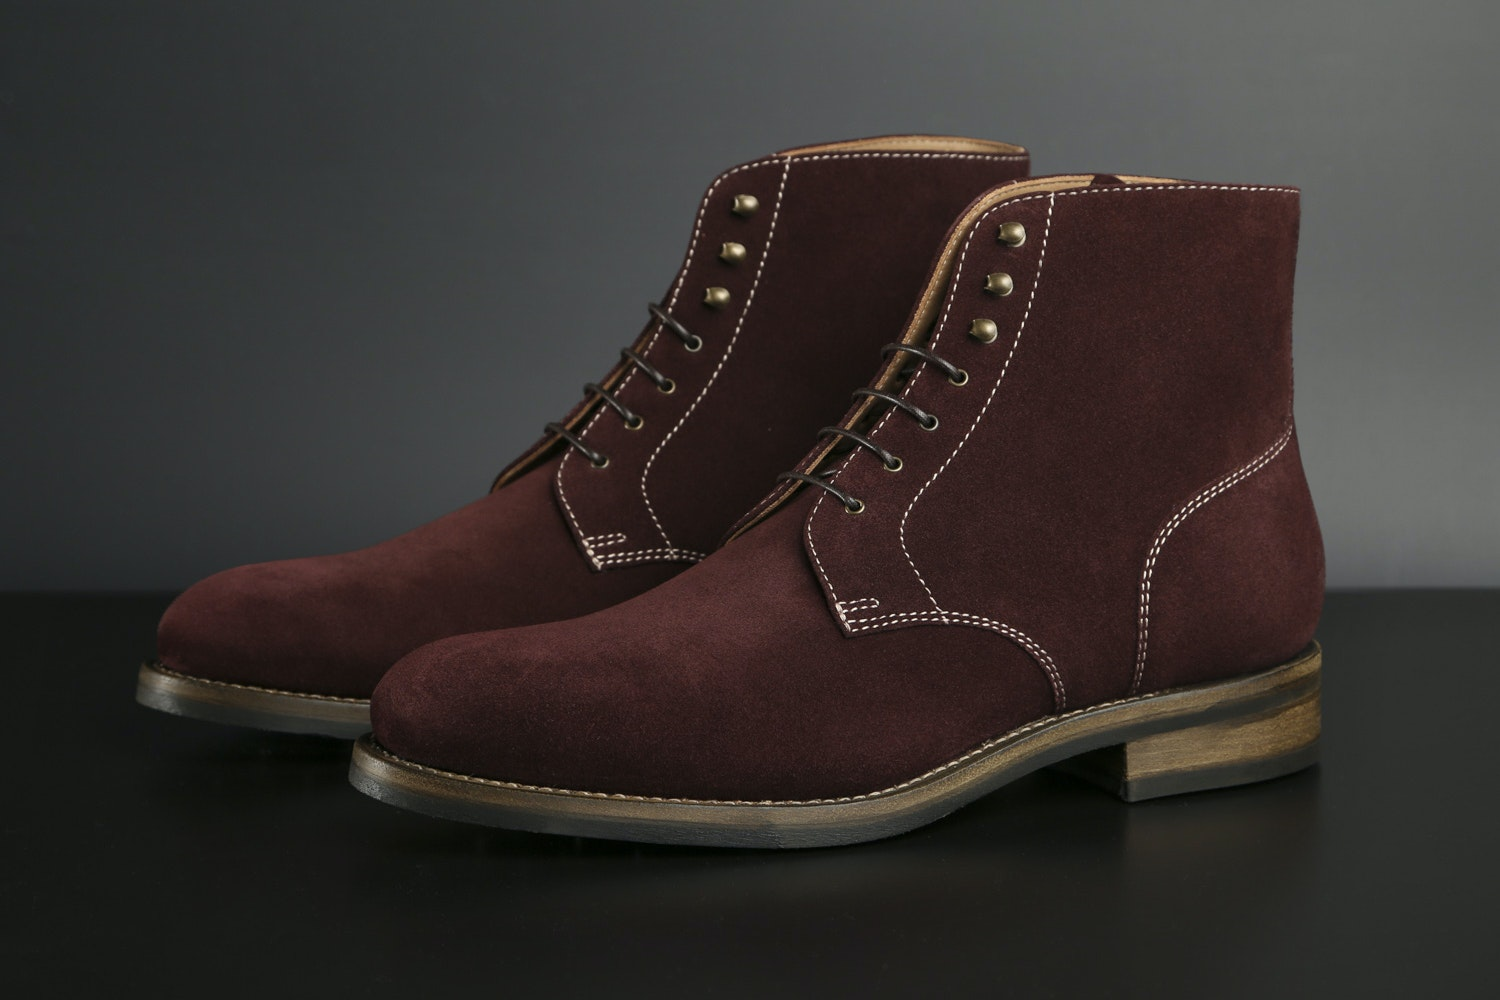 Rider Boot Co. Dundalk Boots